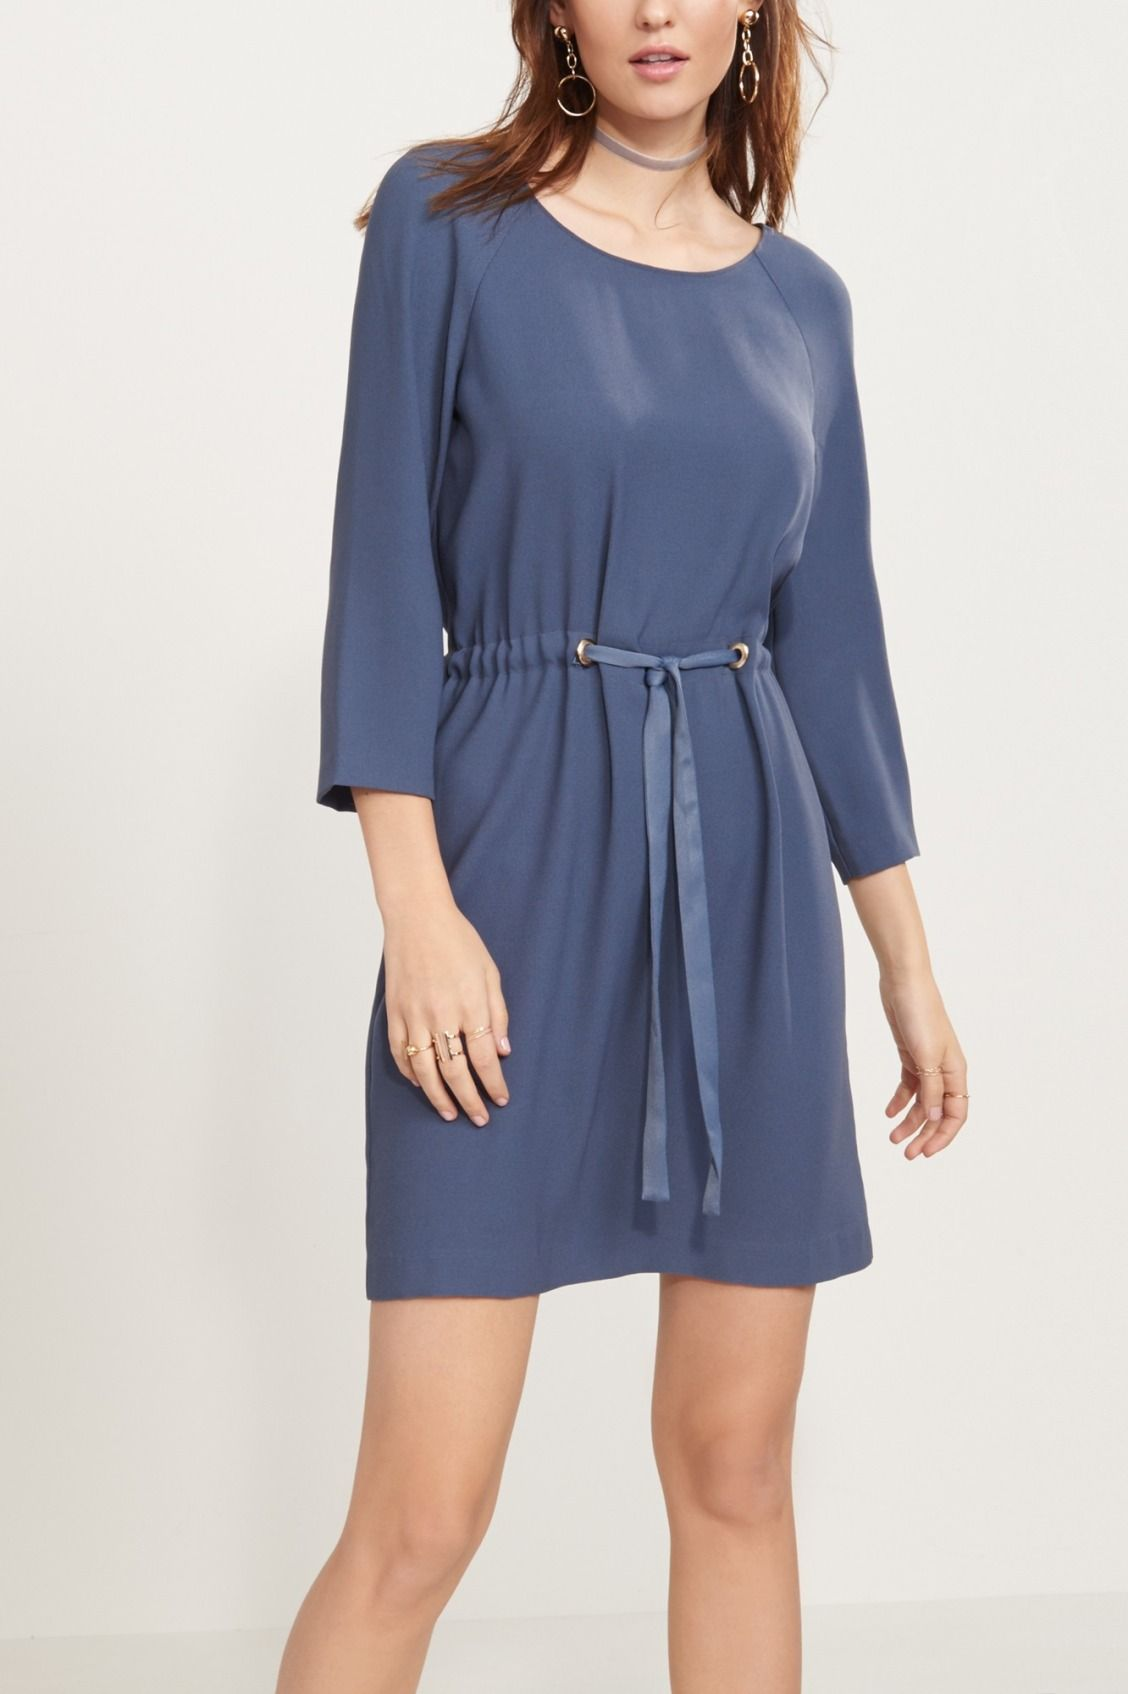 DrawSTRING them along in this stunning dress - Long Sleeve Dress with Drawstring